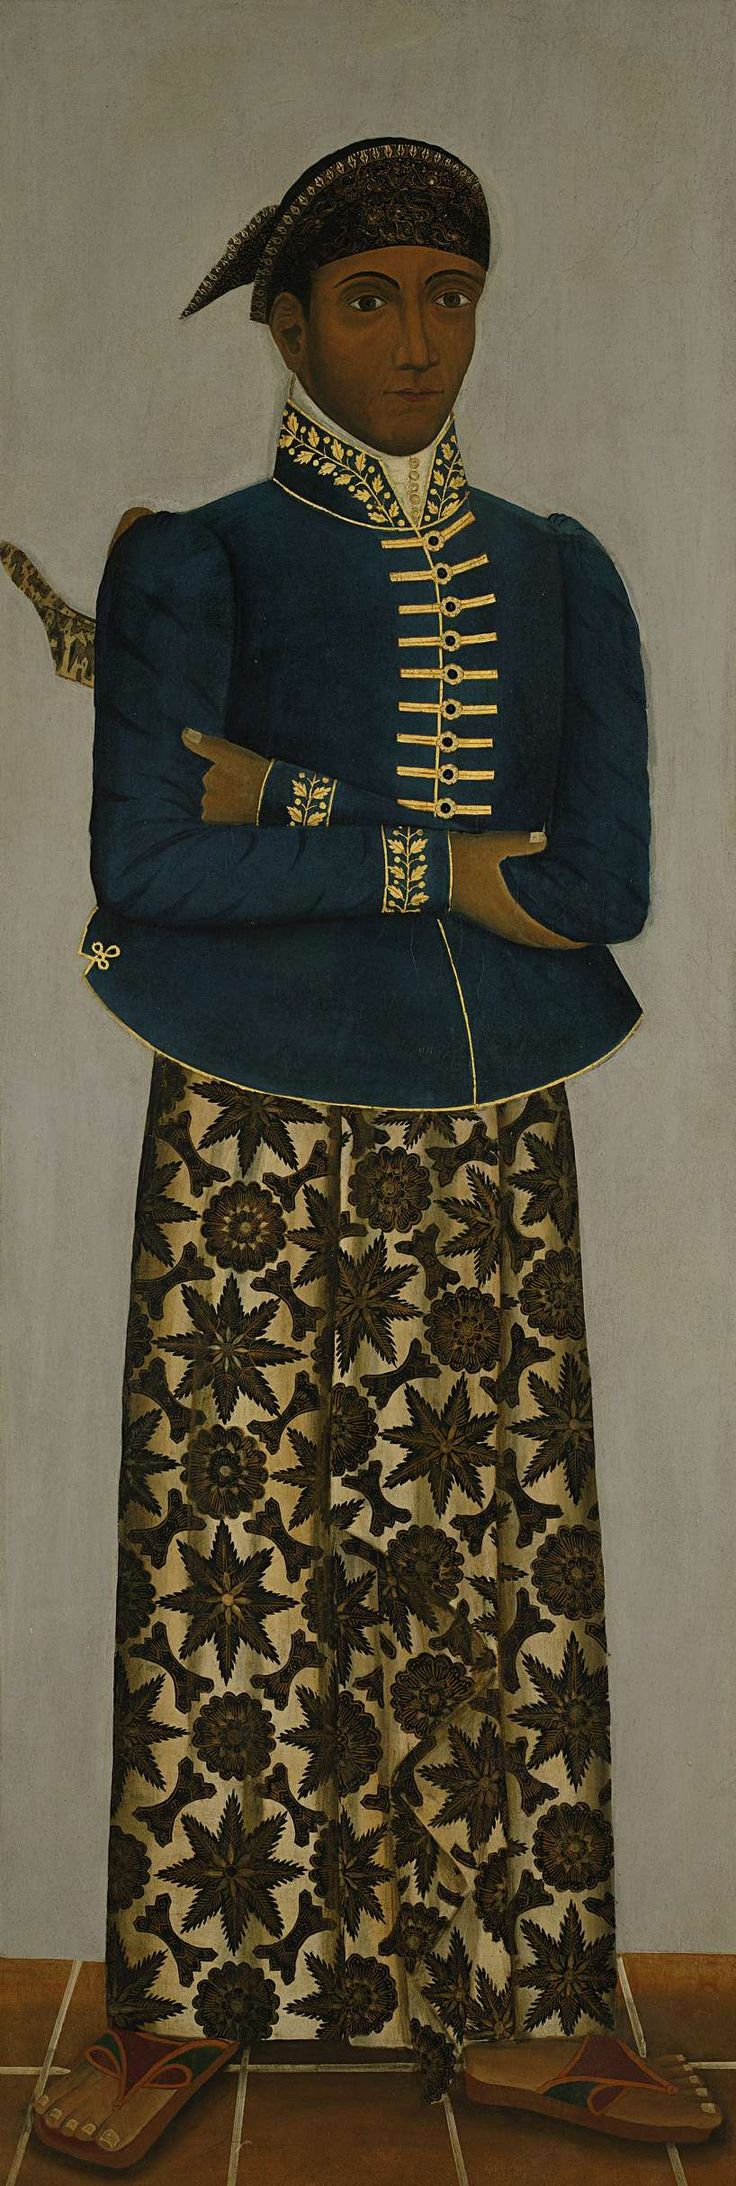 Indonesia, Java, Five Javanese court officials, Anonymous, oil painting, gilding, c. 1820 - c. 1870